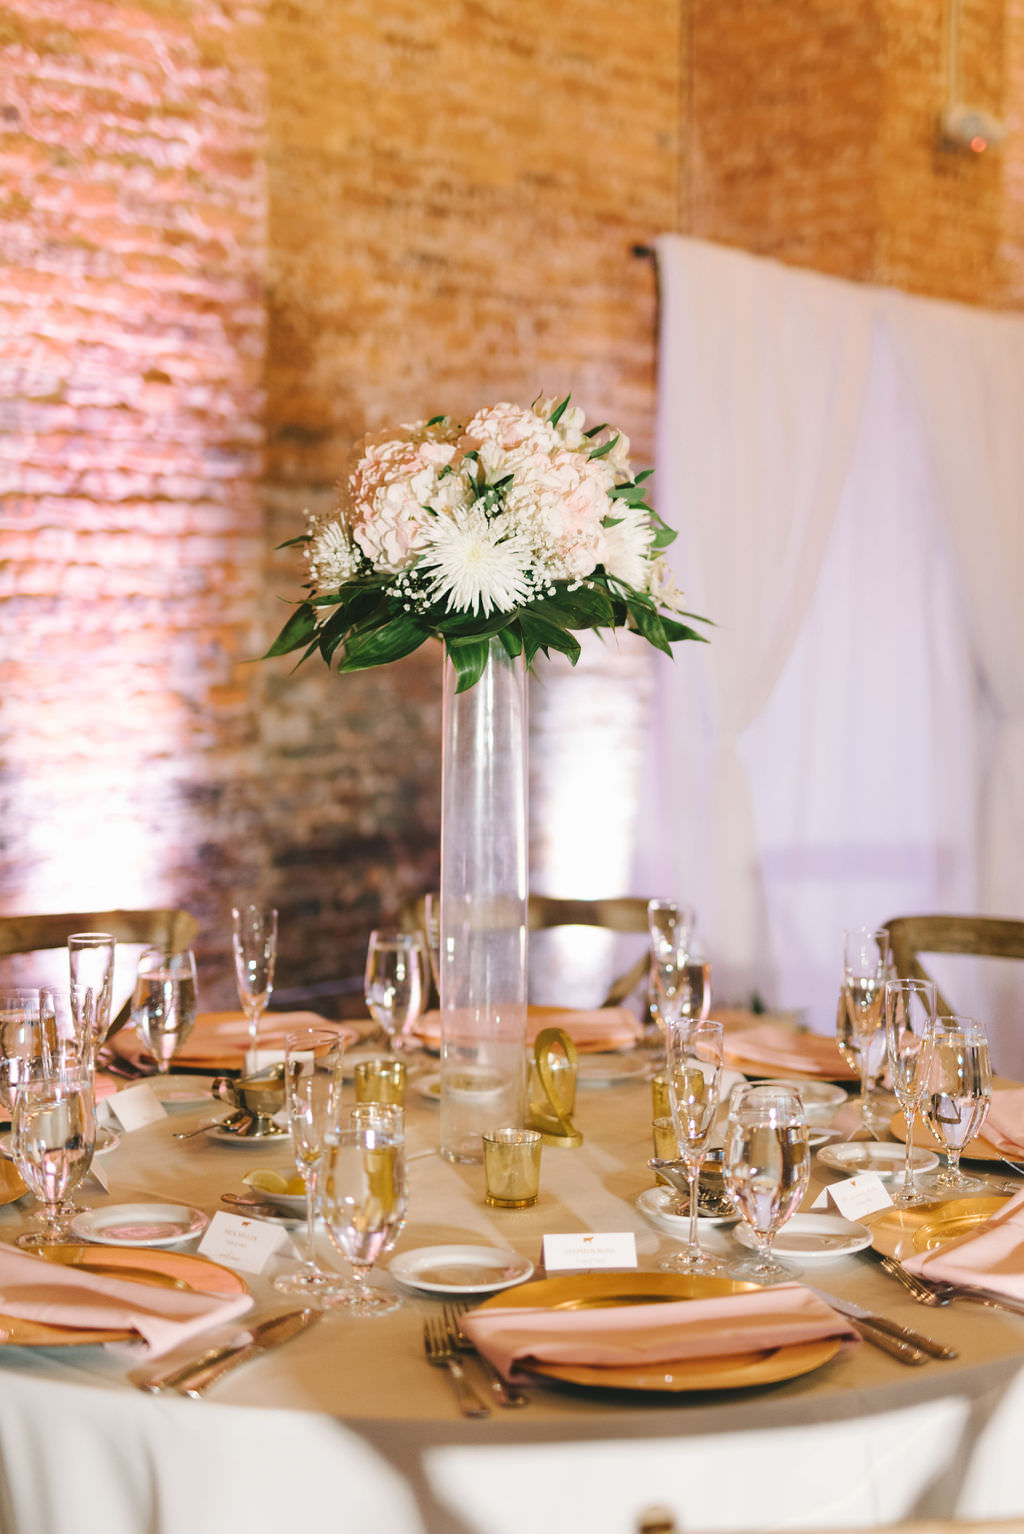 Classic, Romantic Wedding Reception Decor, Round Table with Gold Charger, Tall Clear Glass Cylinder Vase, Blush Pink, White and Greenery Floral Centerpiece   Photographer Kera Photography   Wedding Planner Kelly Kennedy Weddings and Events